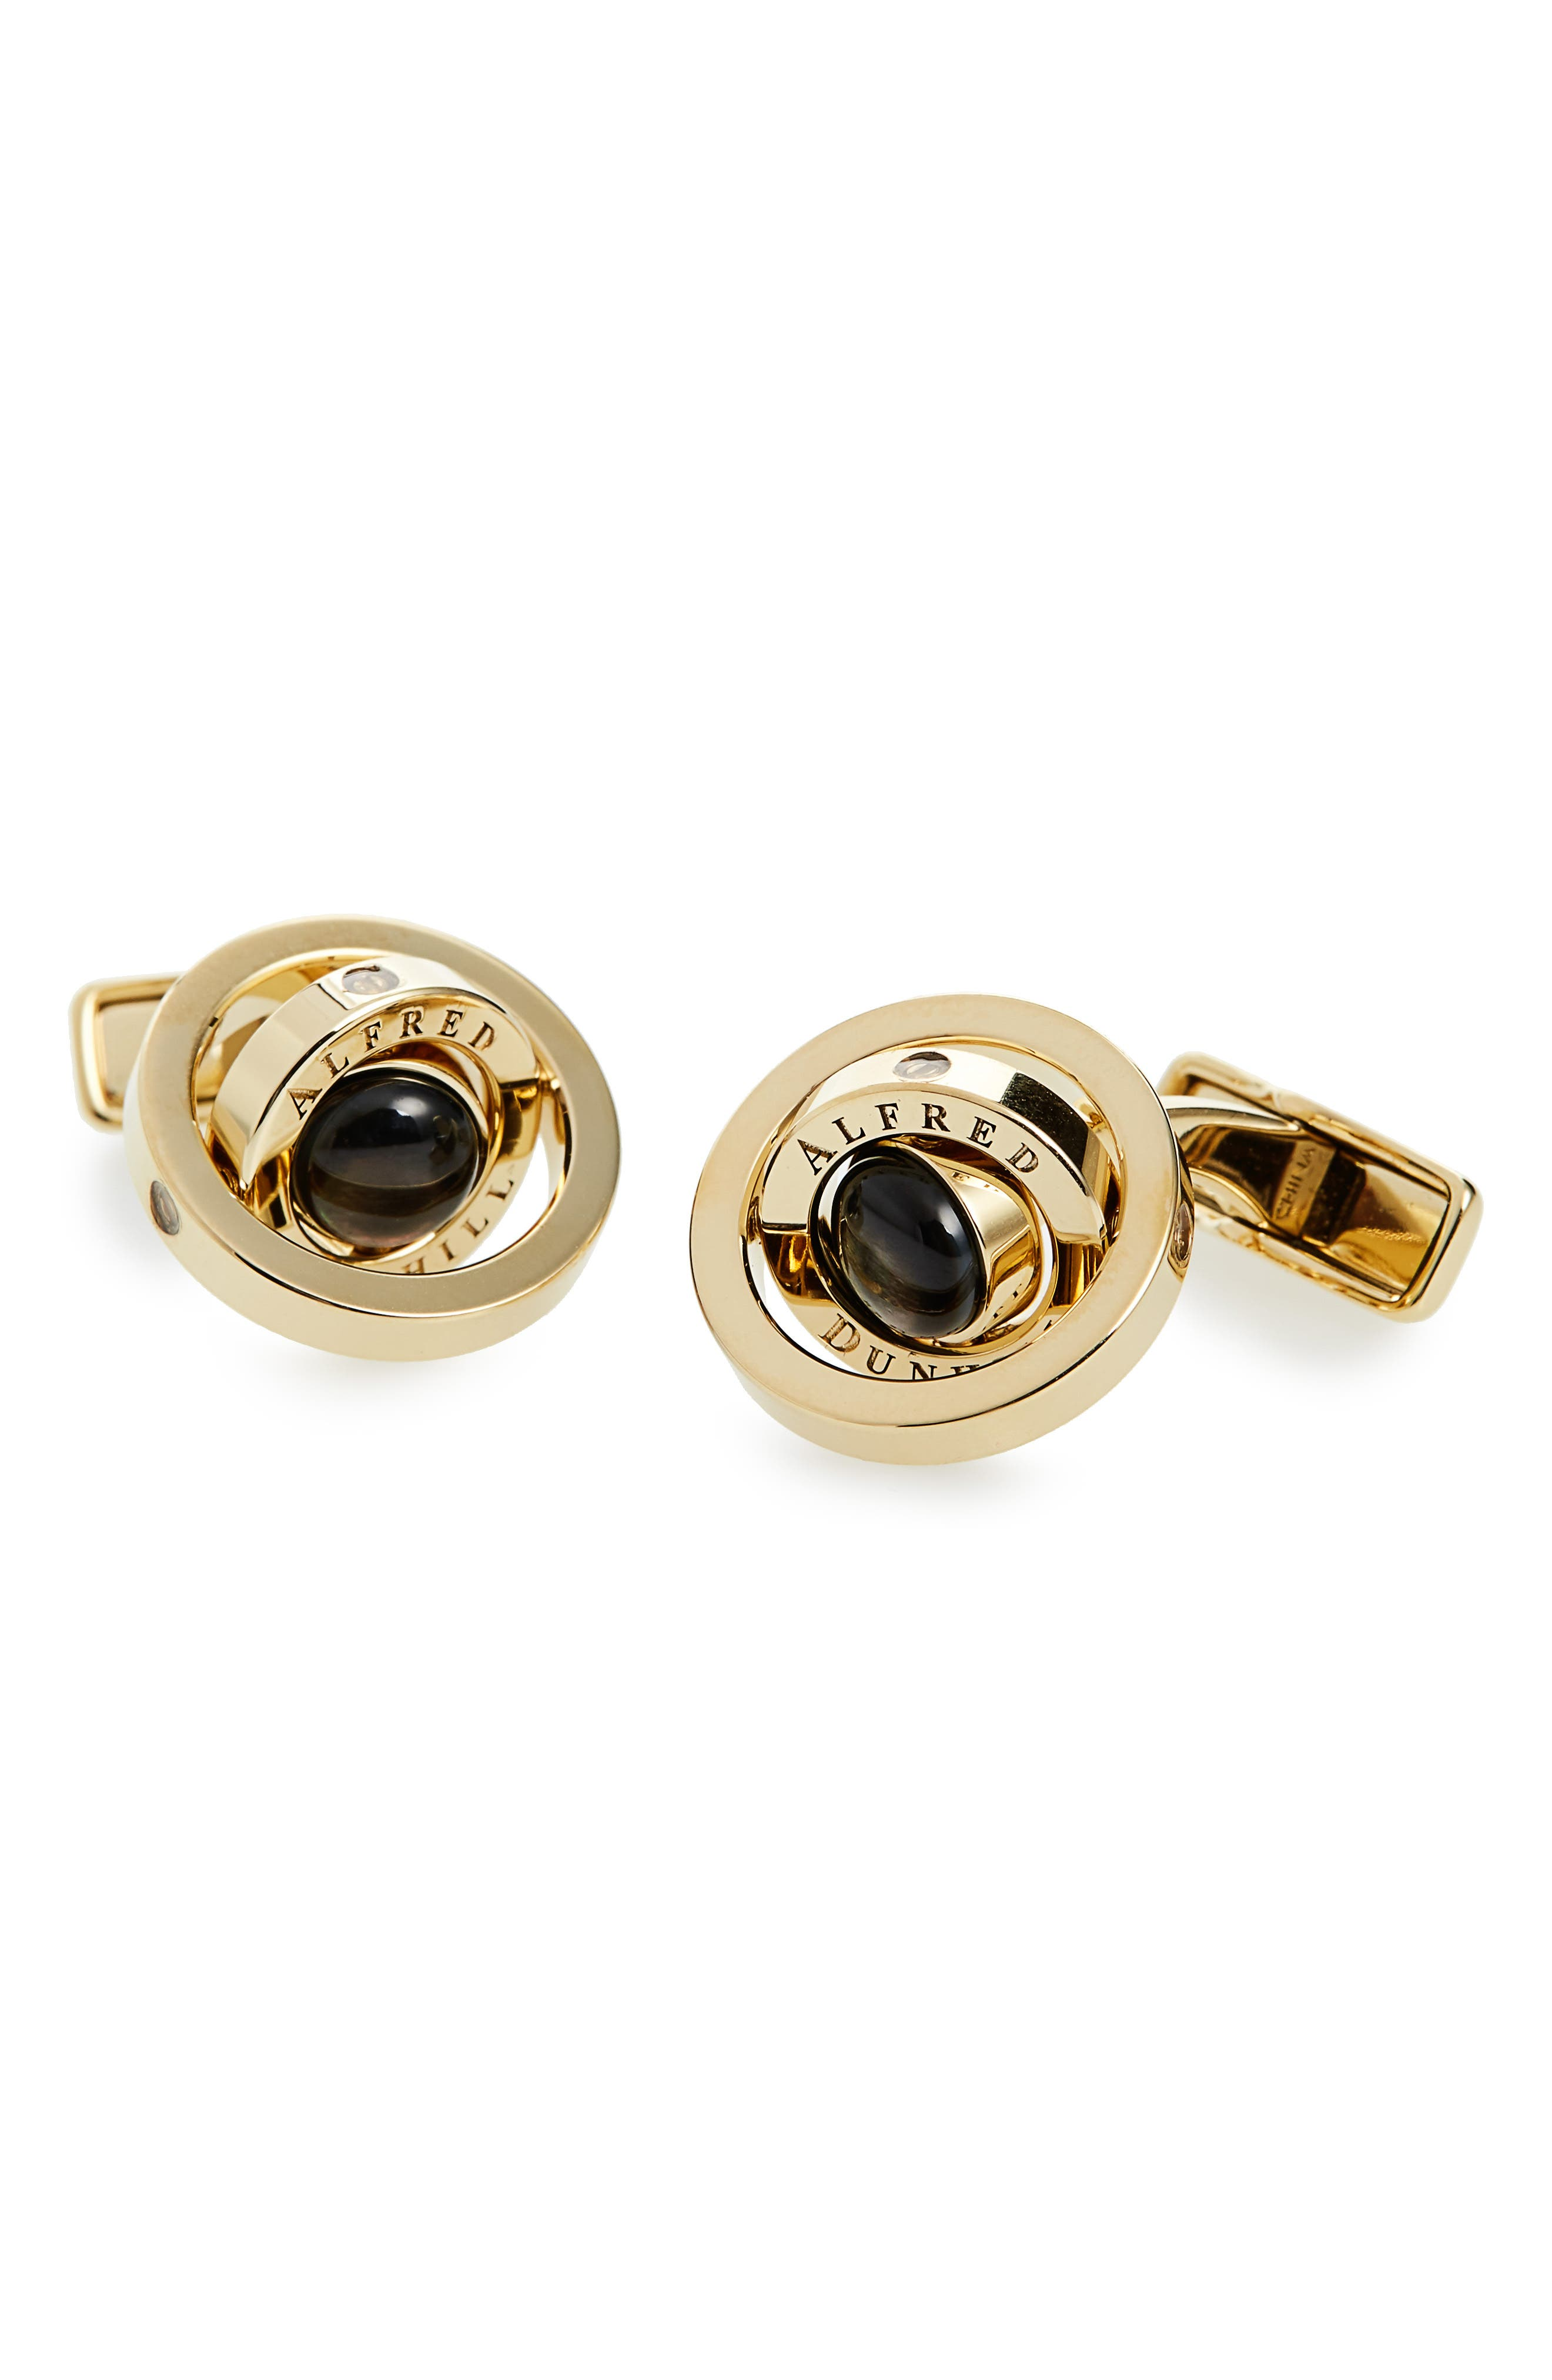 DUNHILL Gyro Cuff Links in Gold